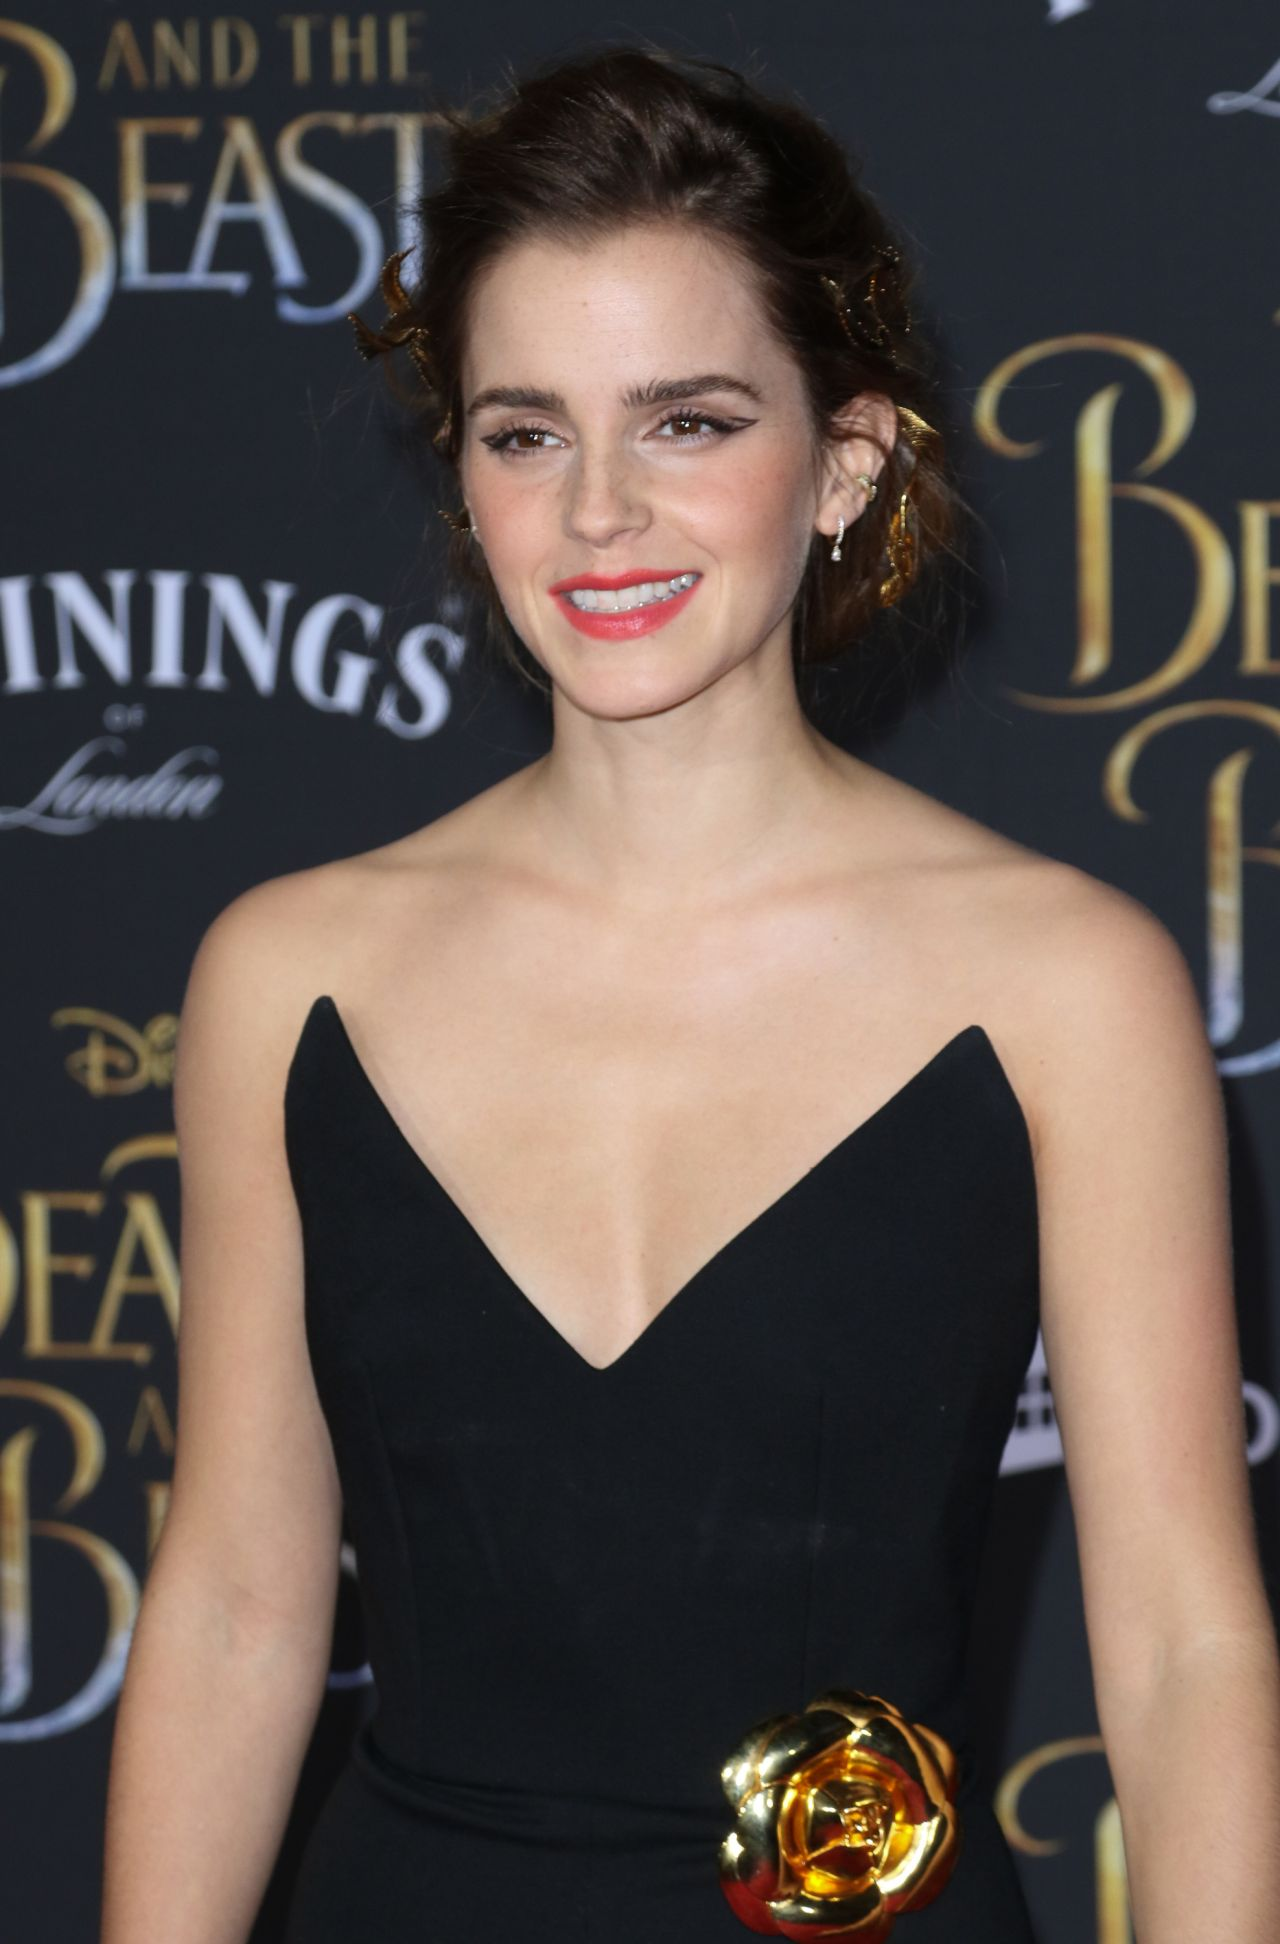 emma-watson-at-beauty-and-the-beast-premiere-in-los-angeles-3-2-2017-7.jpg